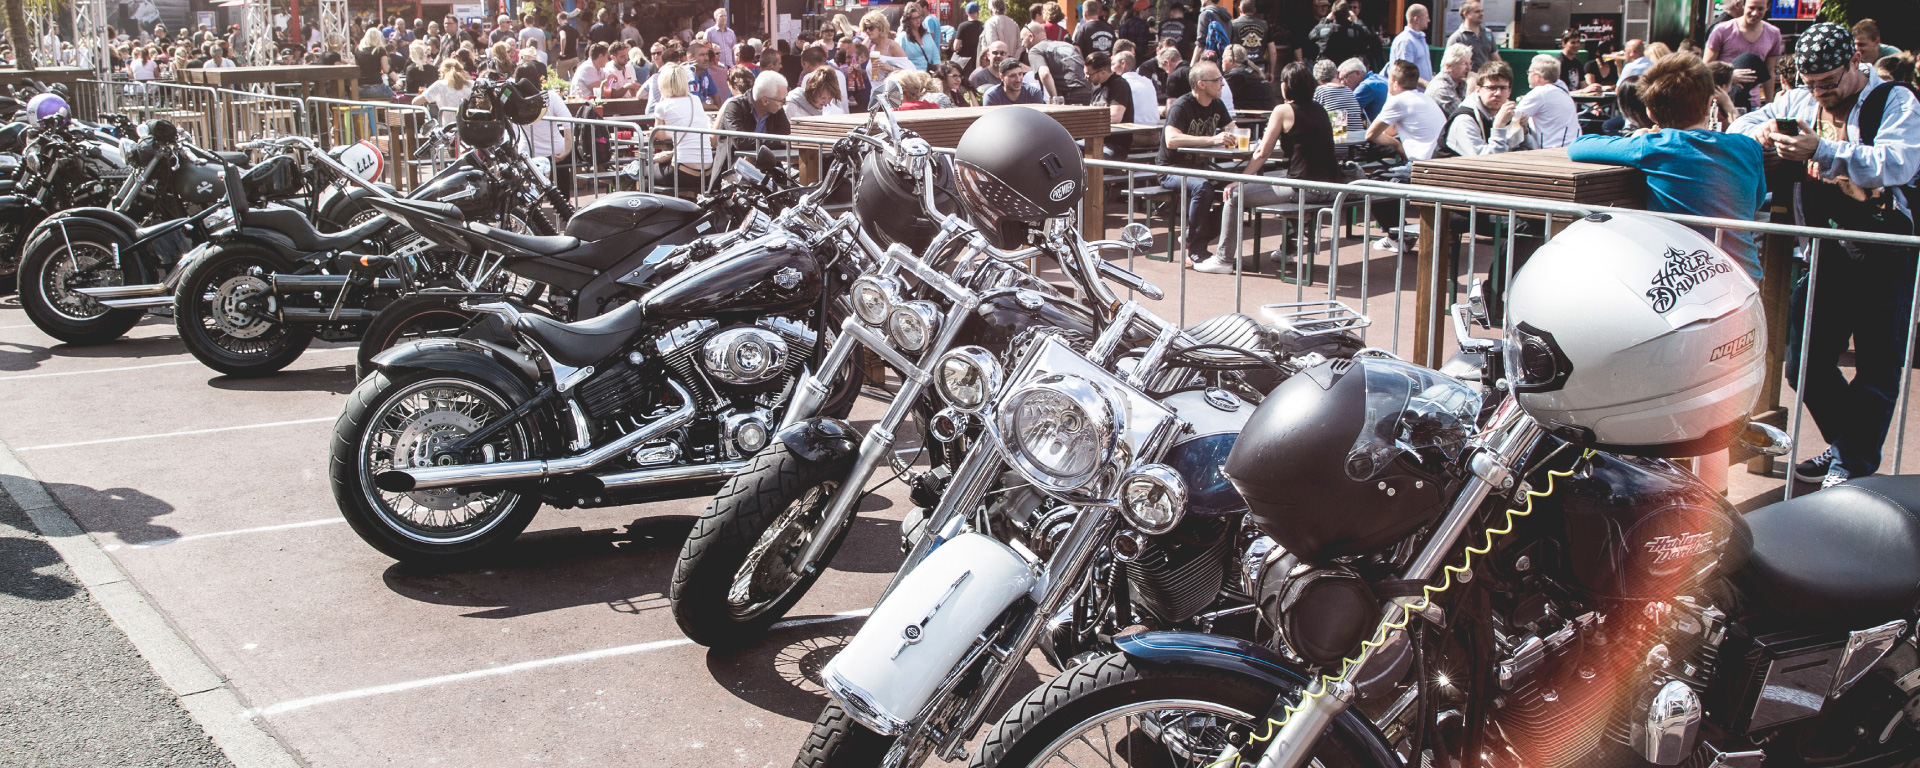 Hamburg Harley Days